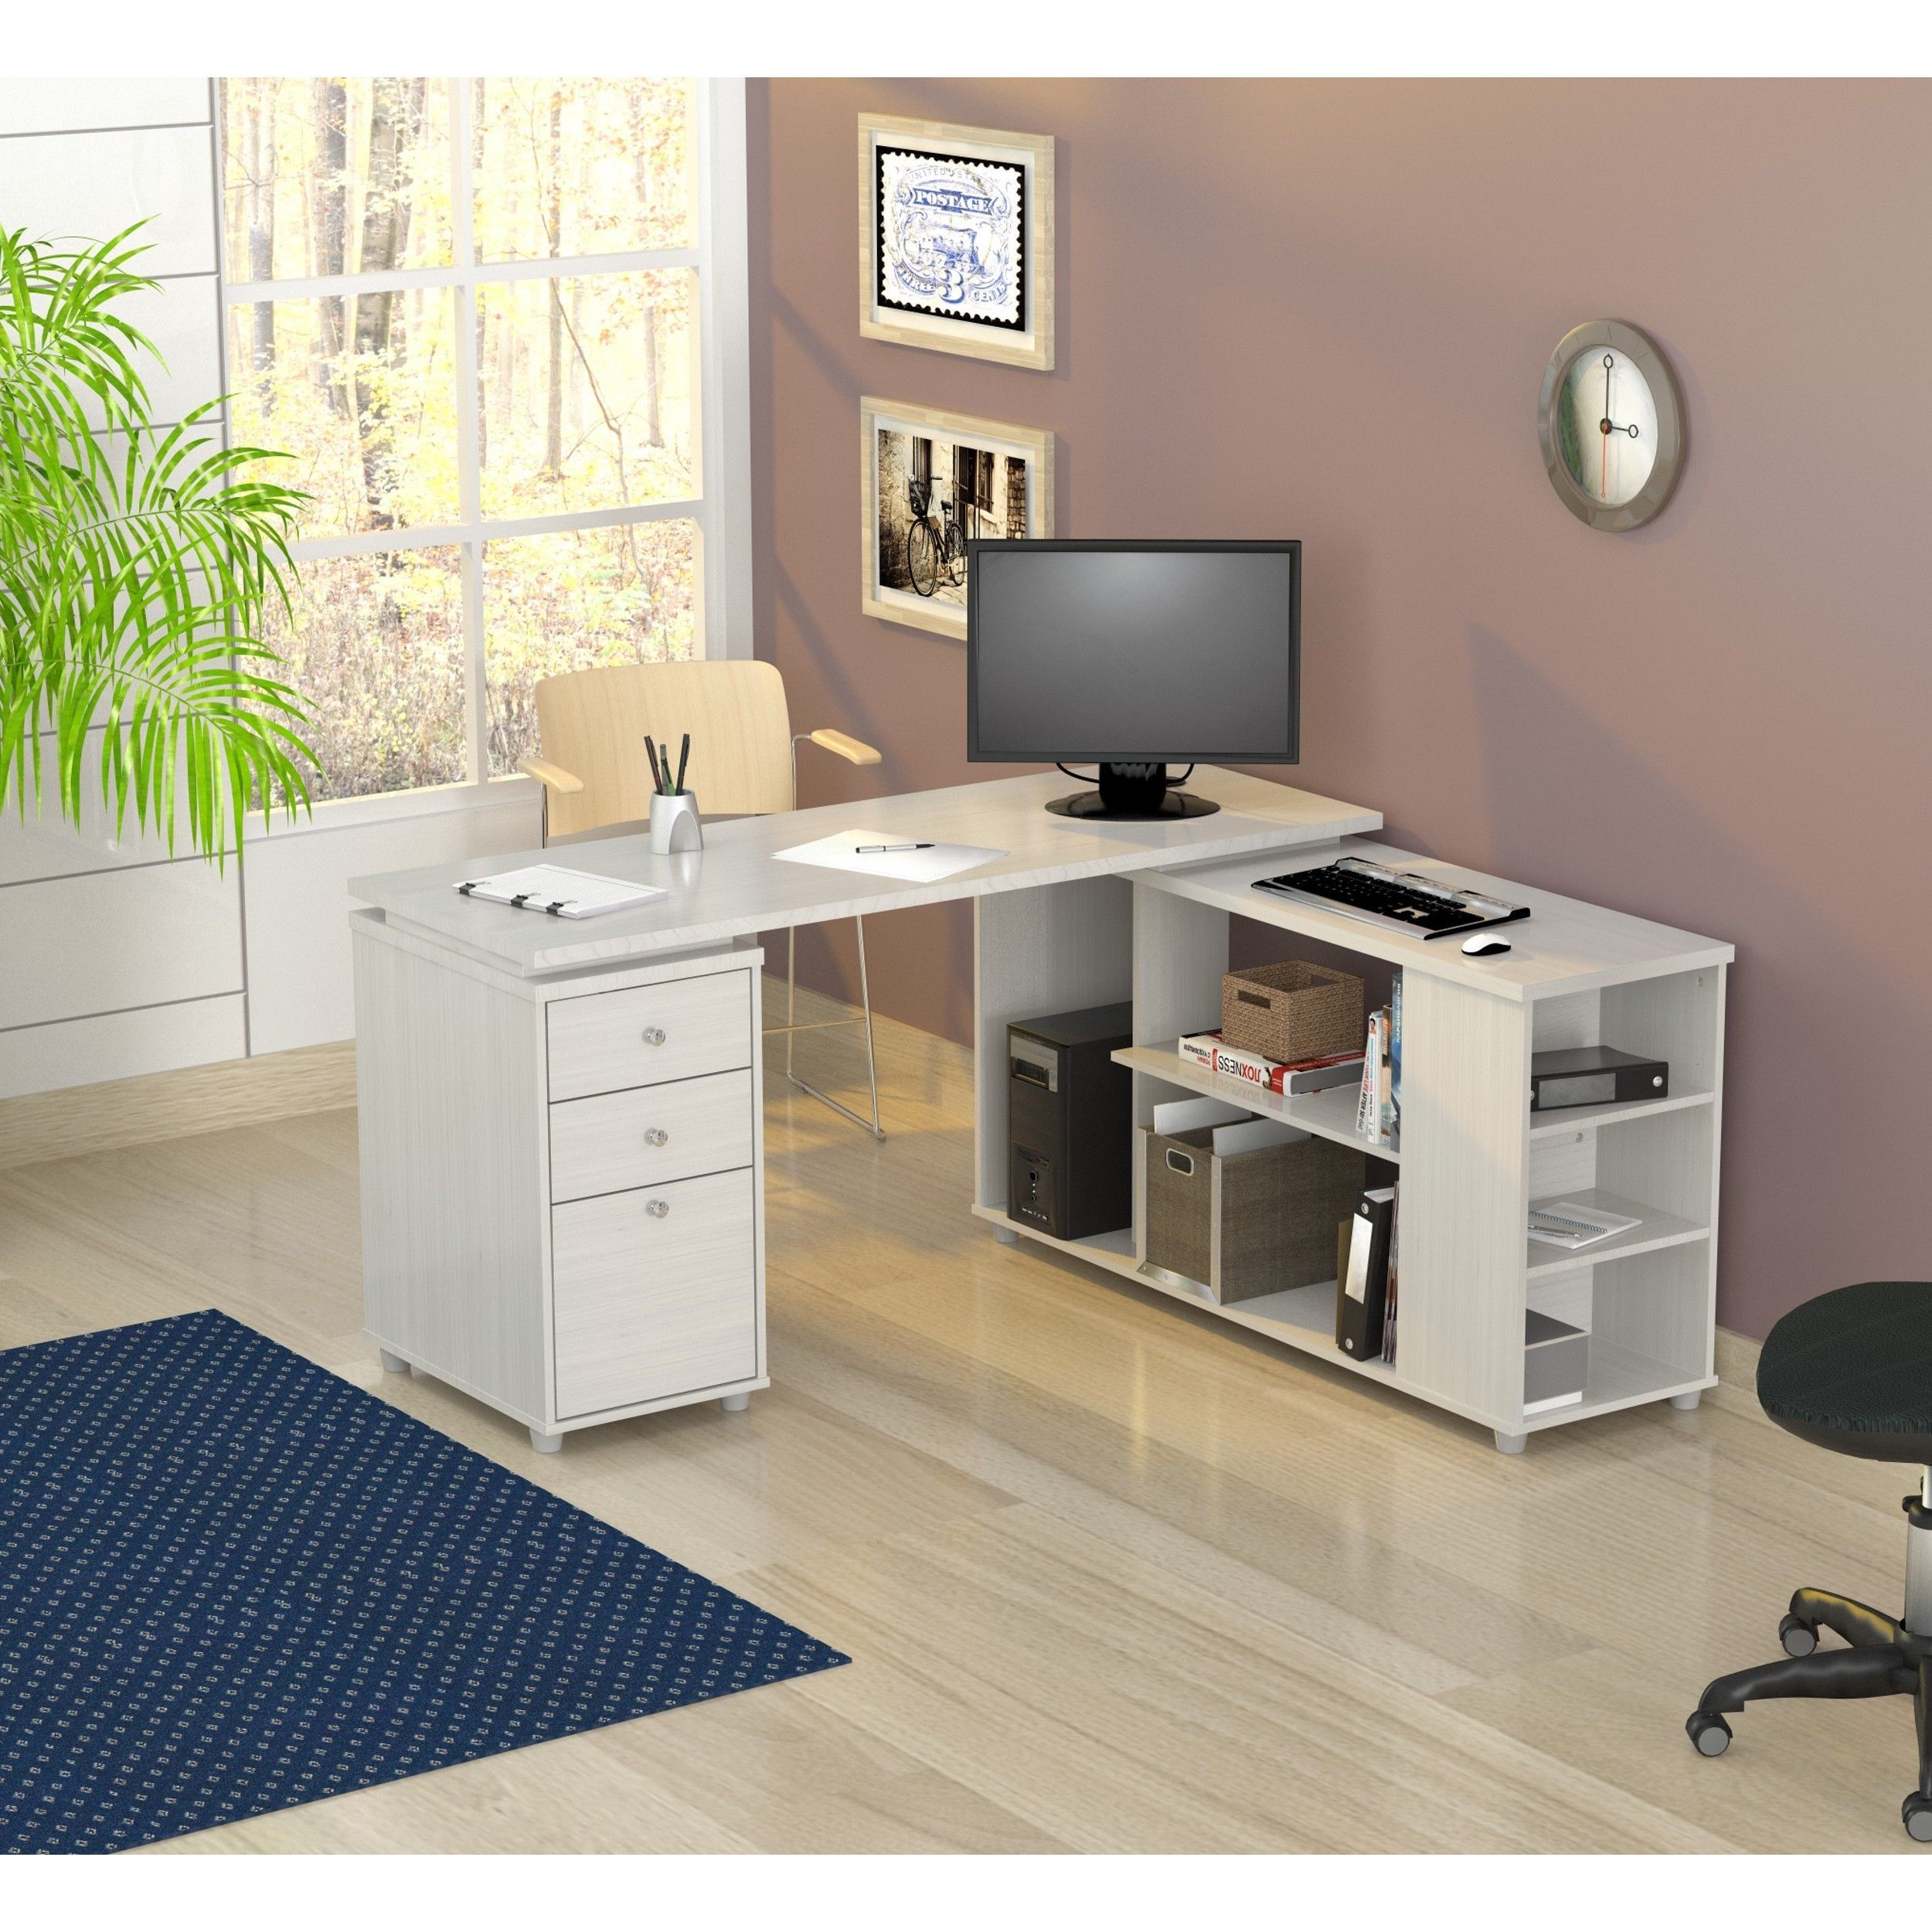 Overstock Com Online Shopping Bedding Furniture Electronics Jewelry Clothing More Home Office Design Work Station Desk Home Office Furniture